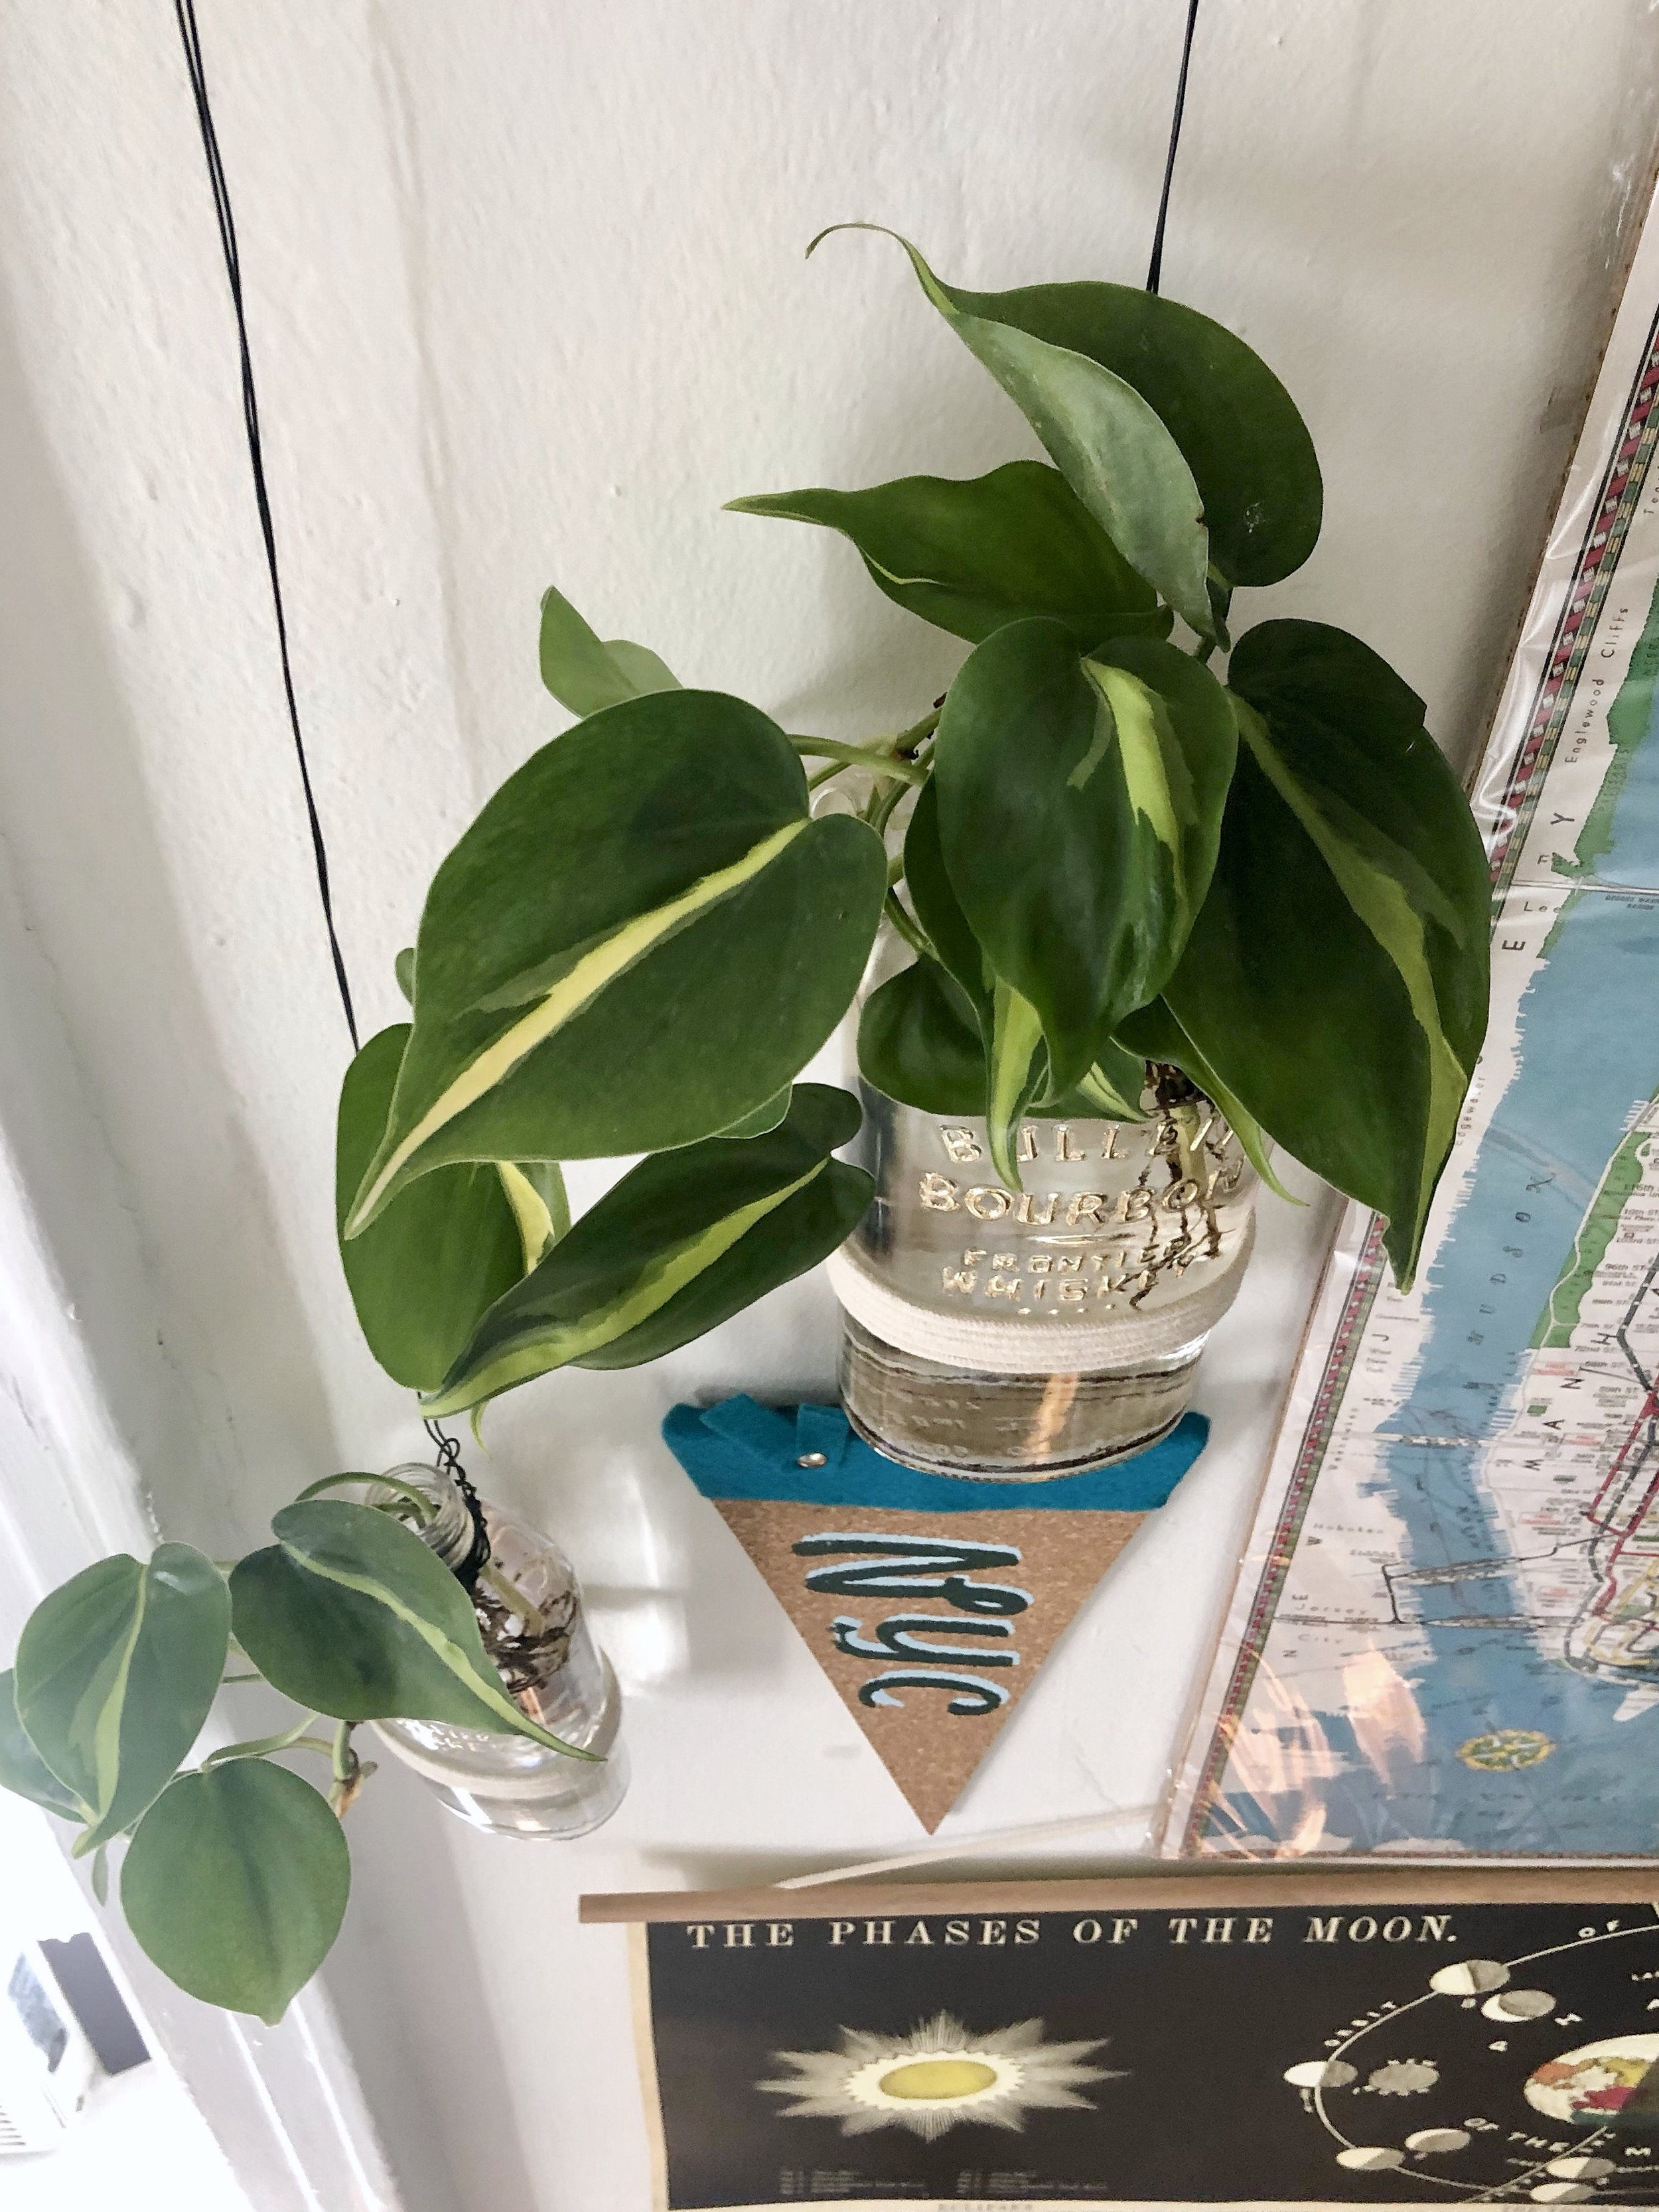 Gold Leafed Upcycled Bulleit Whiskey Bottle Planters #goldleaf #whisky #bourbon #upcycle #recycle #planter #houseplants #apartmentthearpy #apartmentliving #smallspaces #homedecor #indoorgarden #philodendron #earthday #earthdaycraft